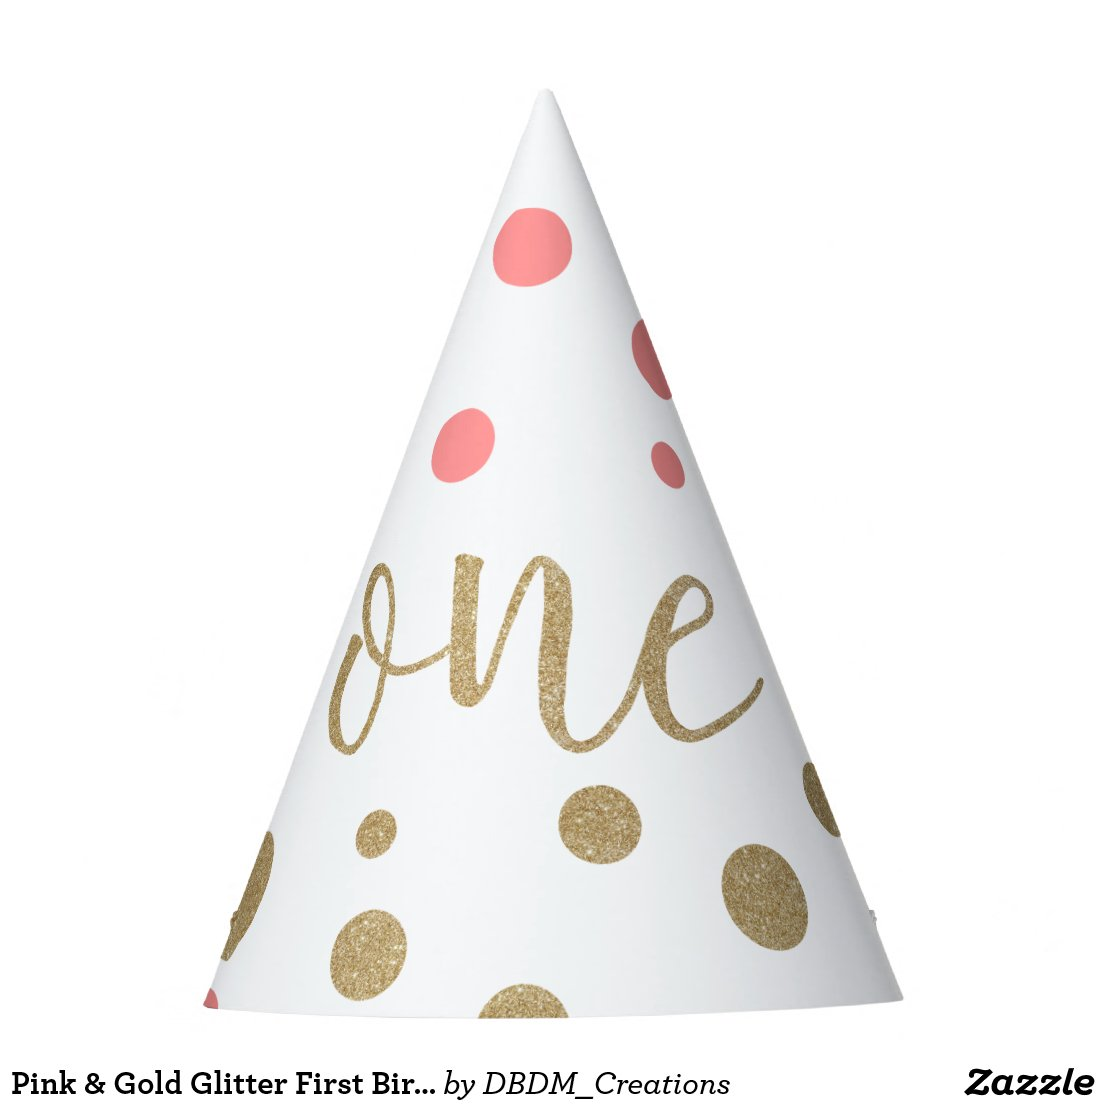 Pink & Gold Glitter First Birthday Hats